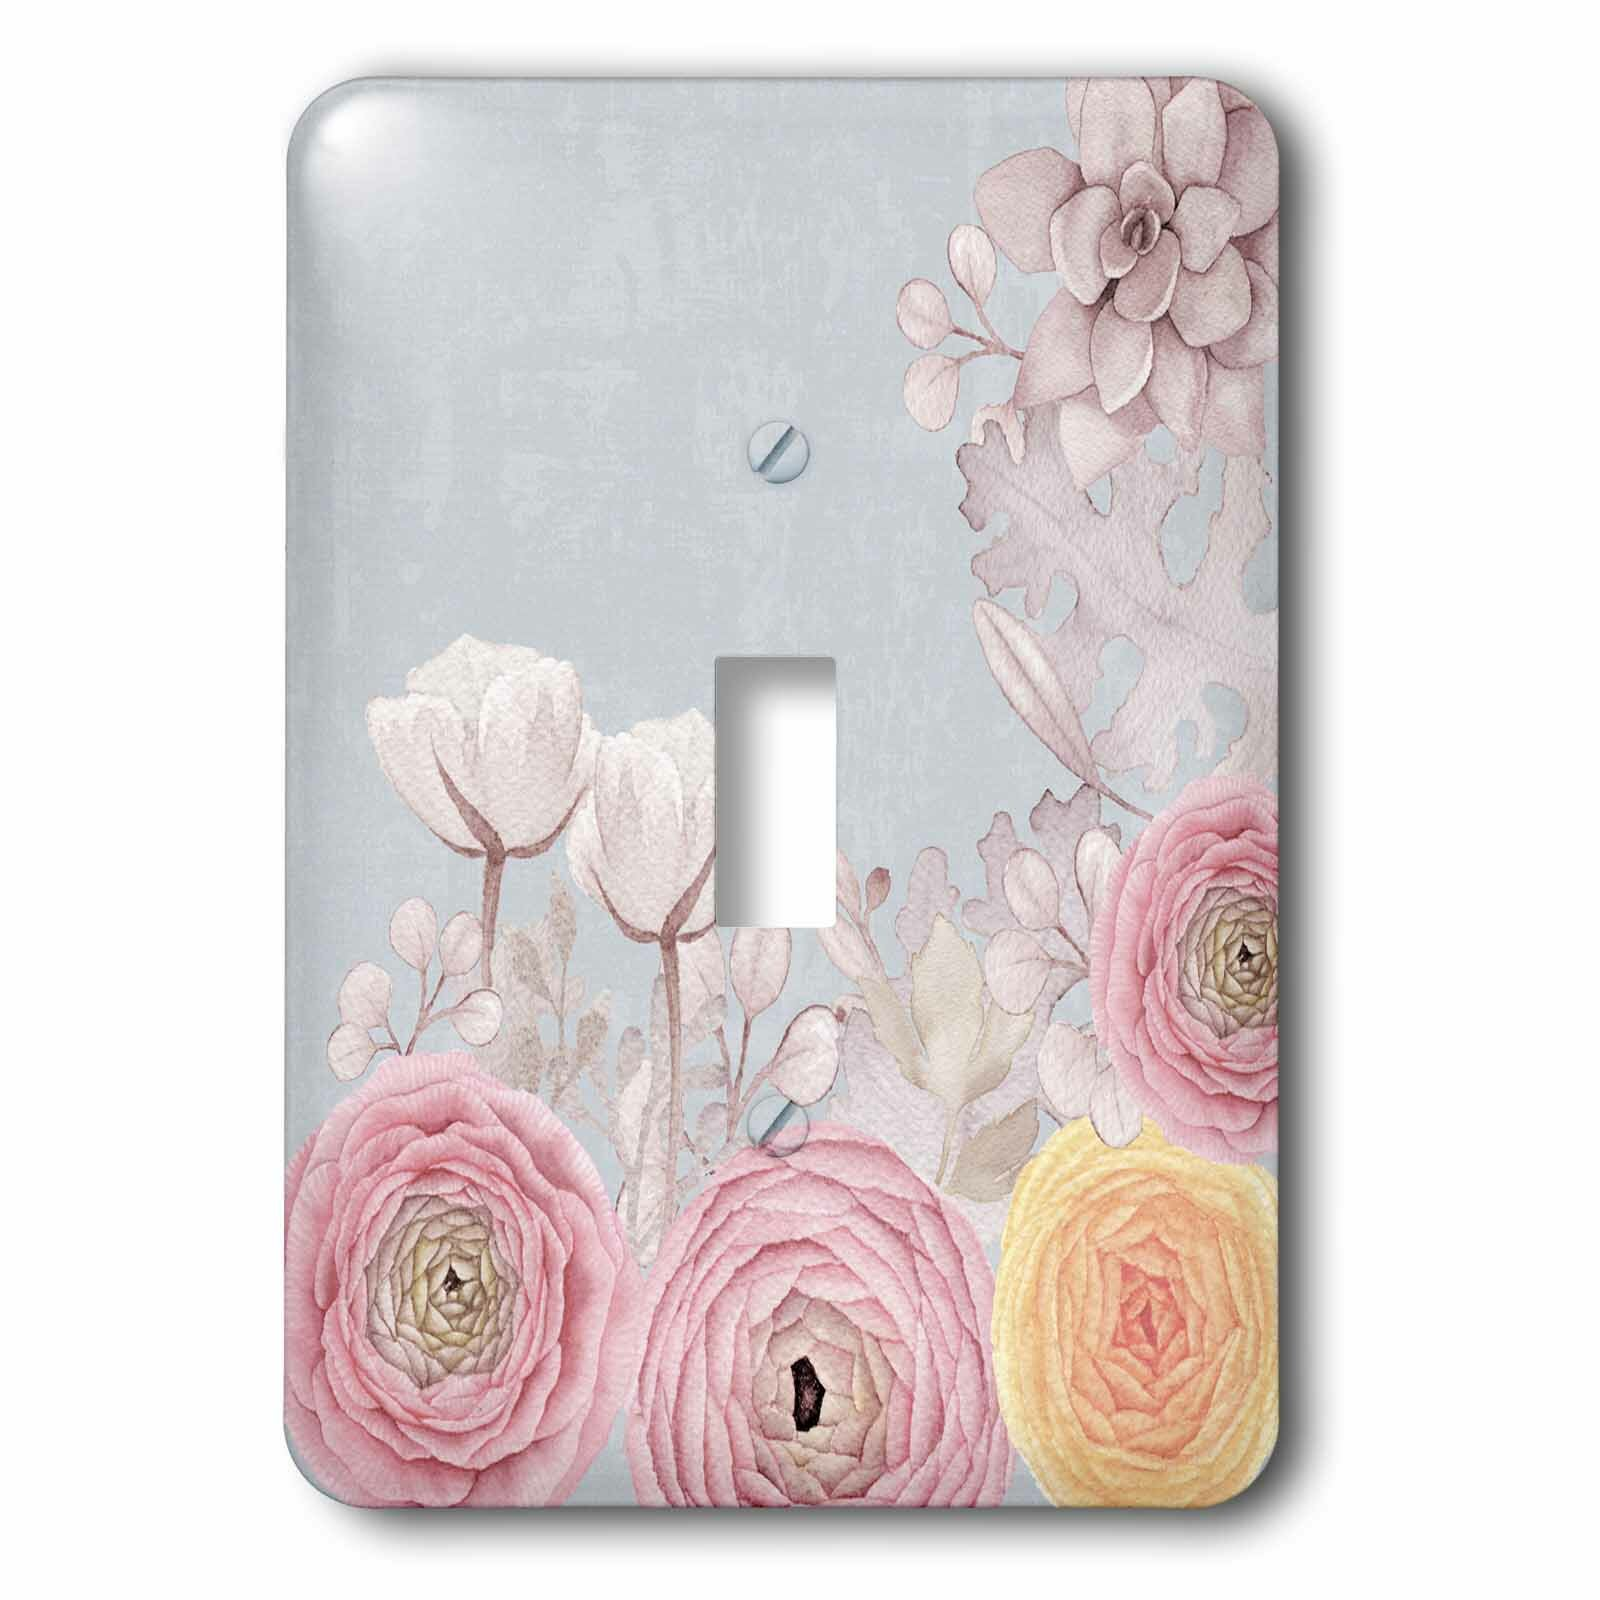 3drose Pastel Flowers 1 Gang Toggle Light Switch Wall Plate Wayfair